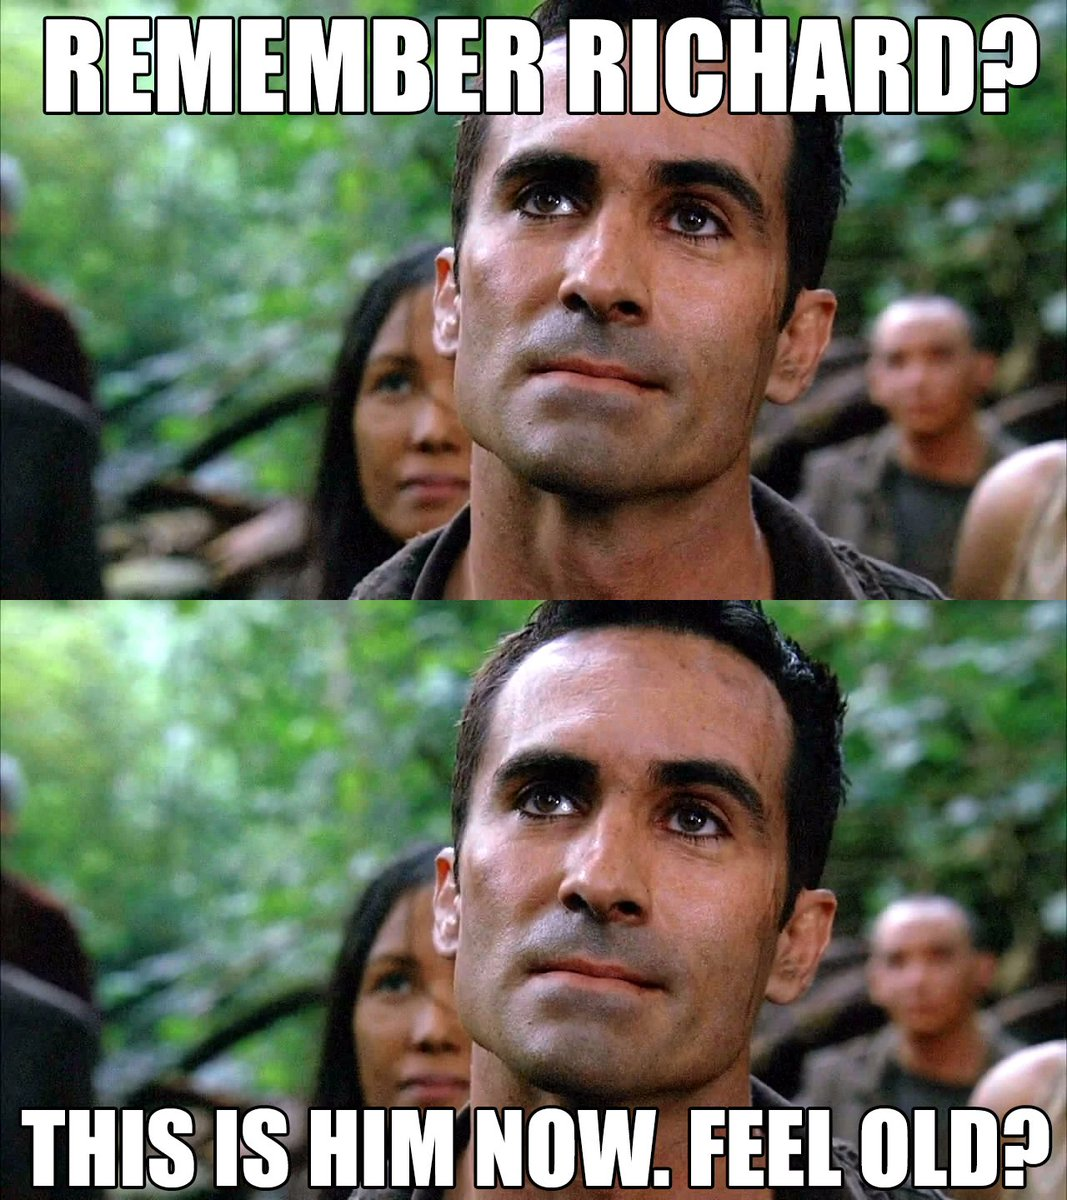 #LOST Where are they now? #RichardAlpert<br>http://pic.twitter.com/amleWzRRLc